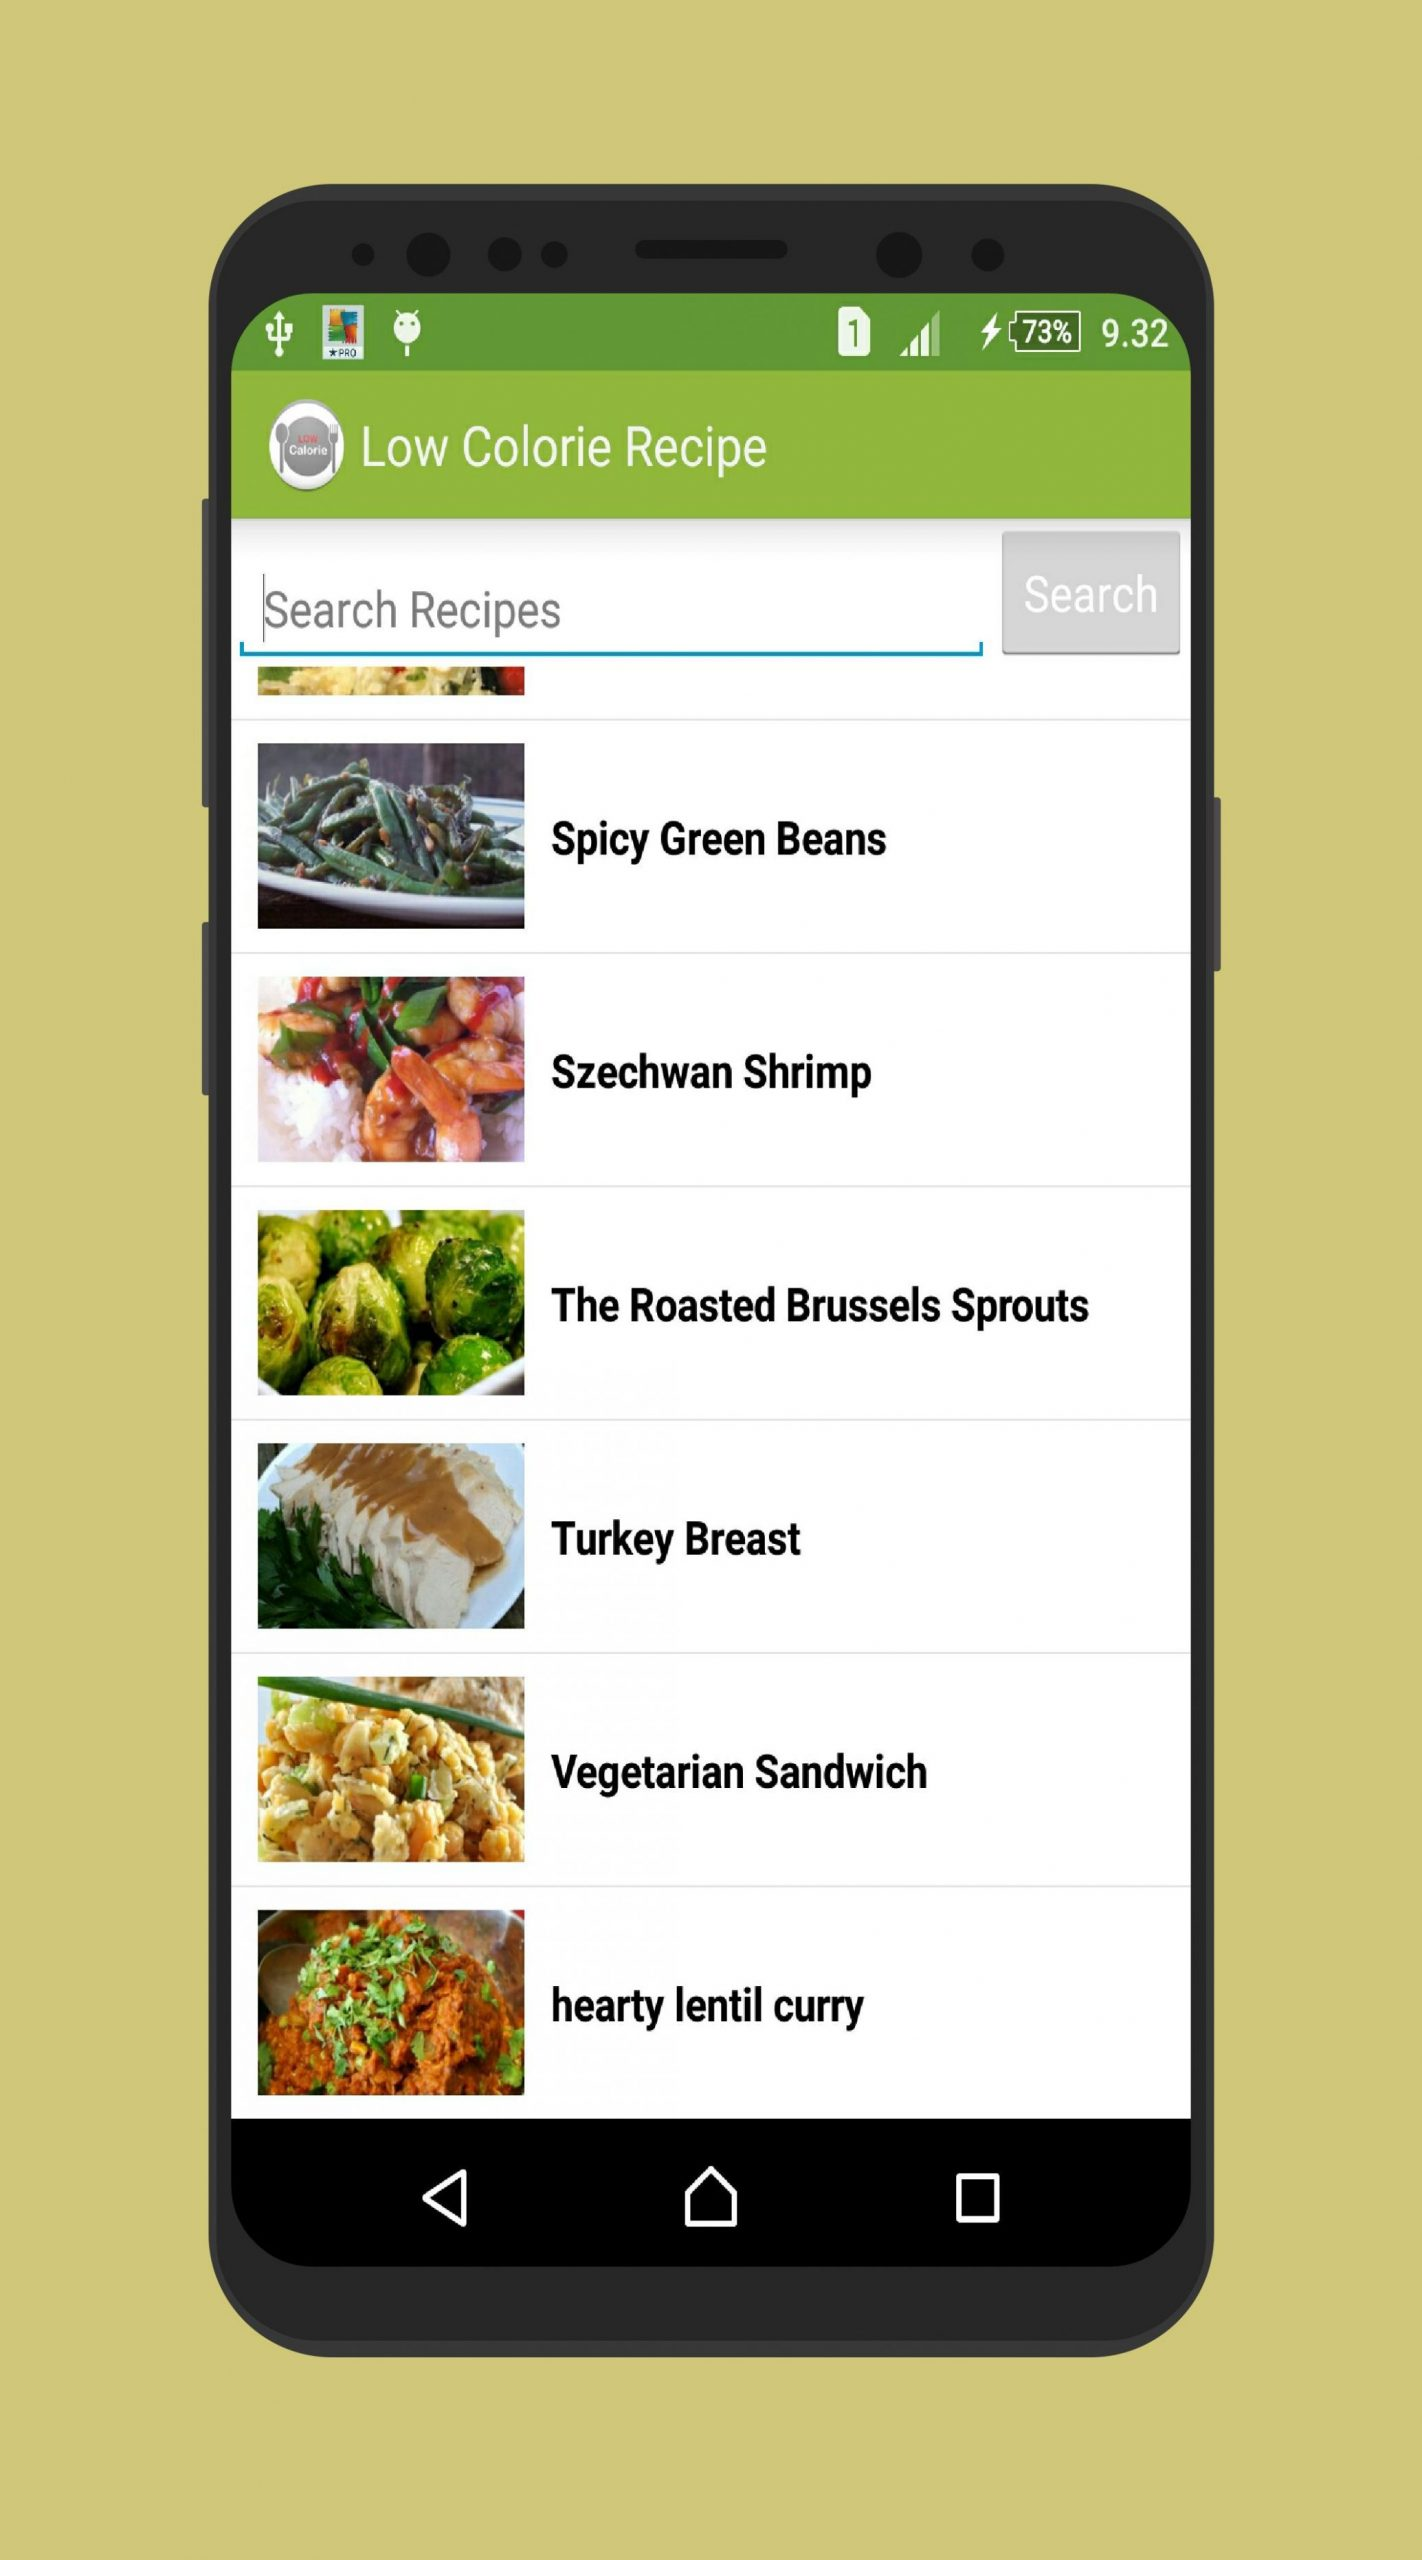 Low Calorie Easy Recipes Offline App for Android - APK Download